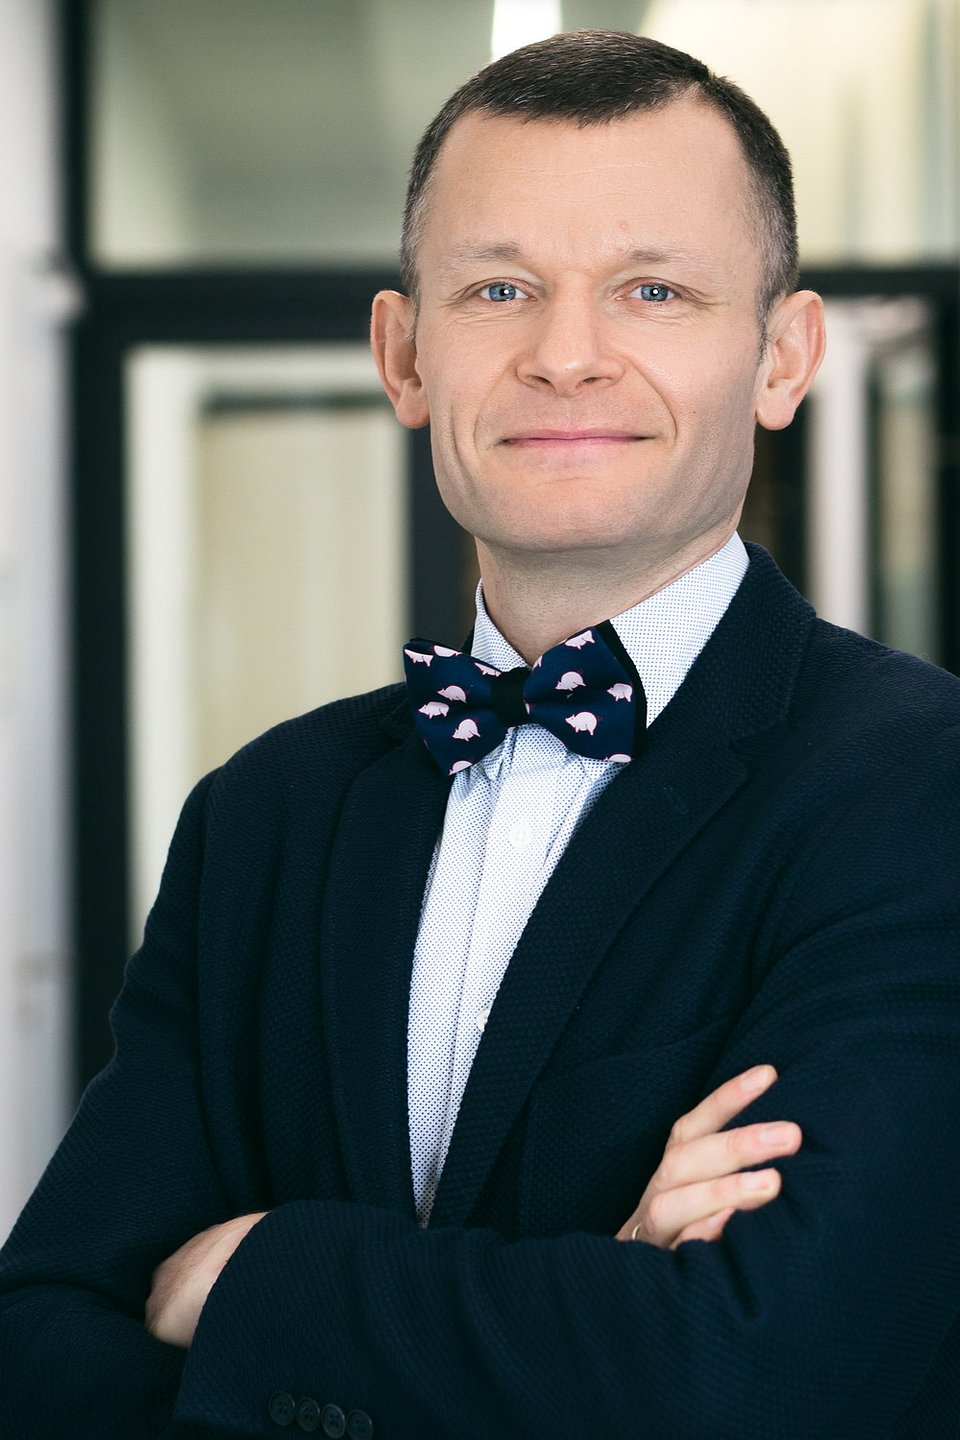 ZBIGNIEW NOWICKI CO-MANAGING DIRECTOR BLUERANK